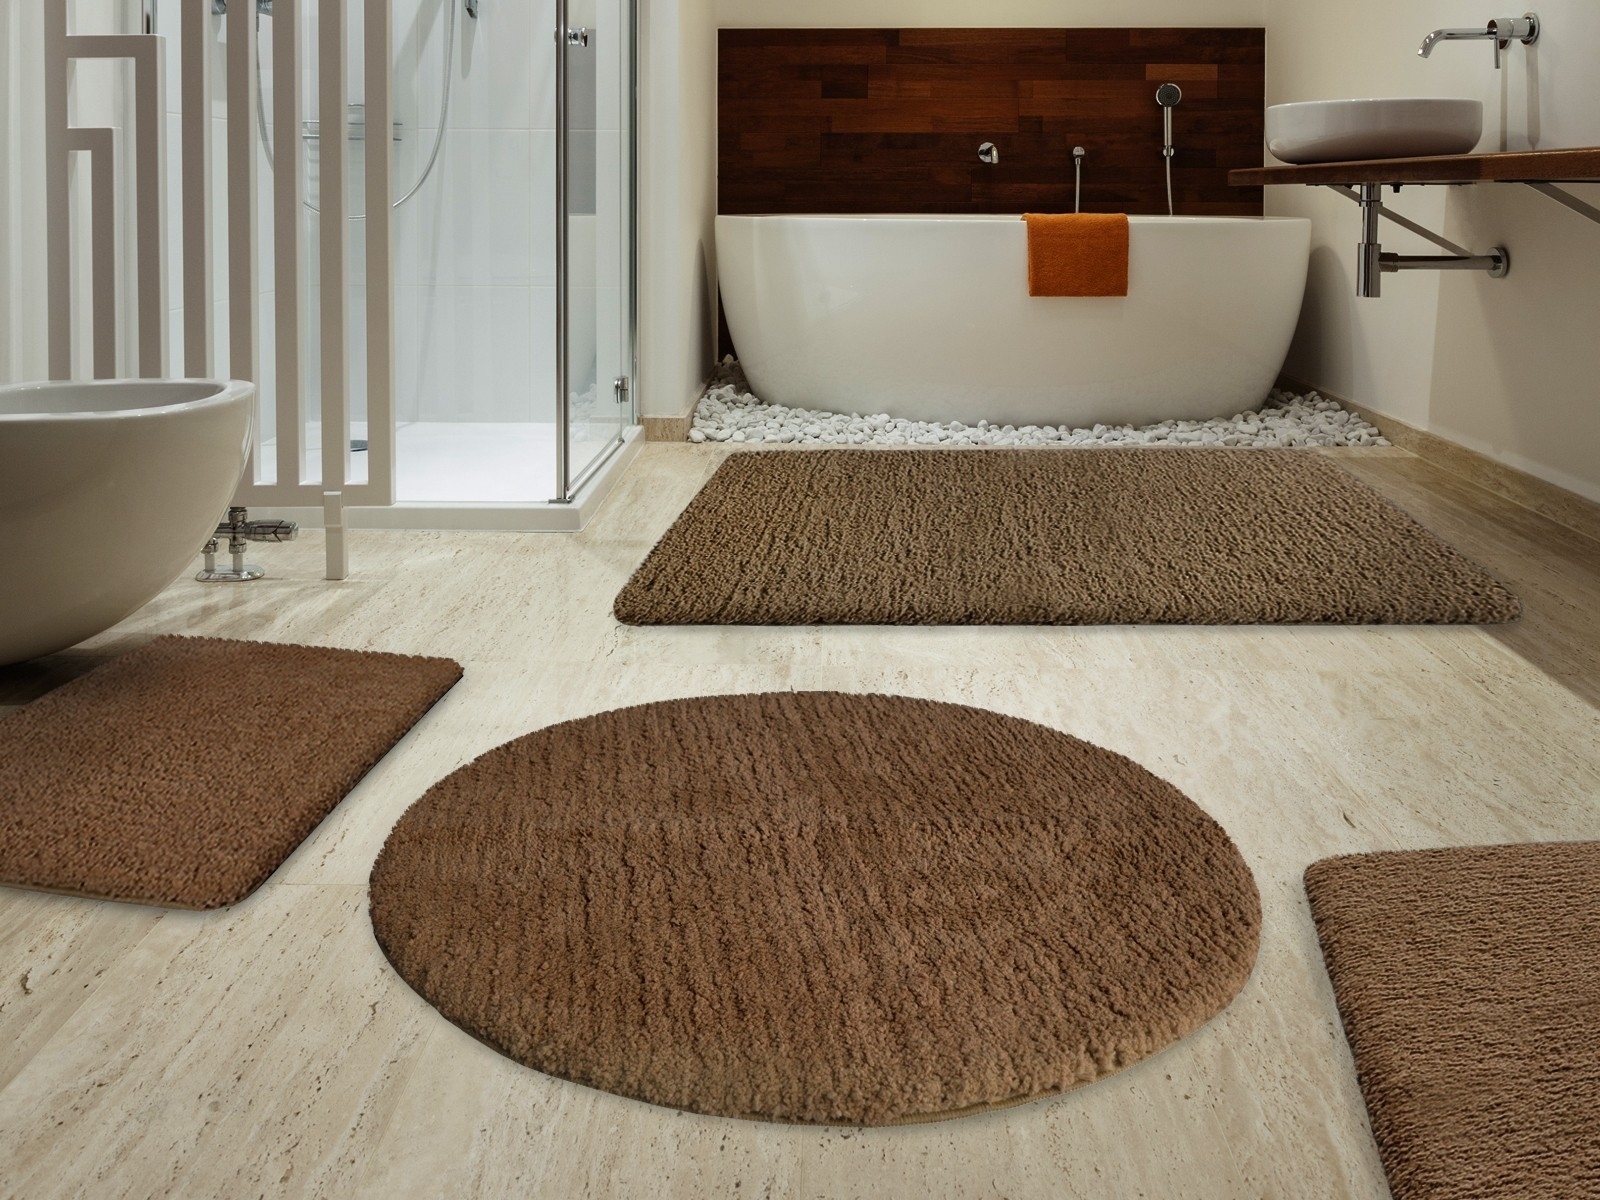 Large Rubber Backed Bathroom Mats